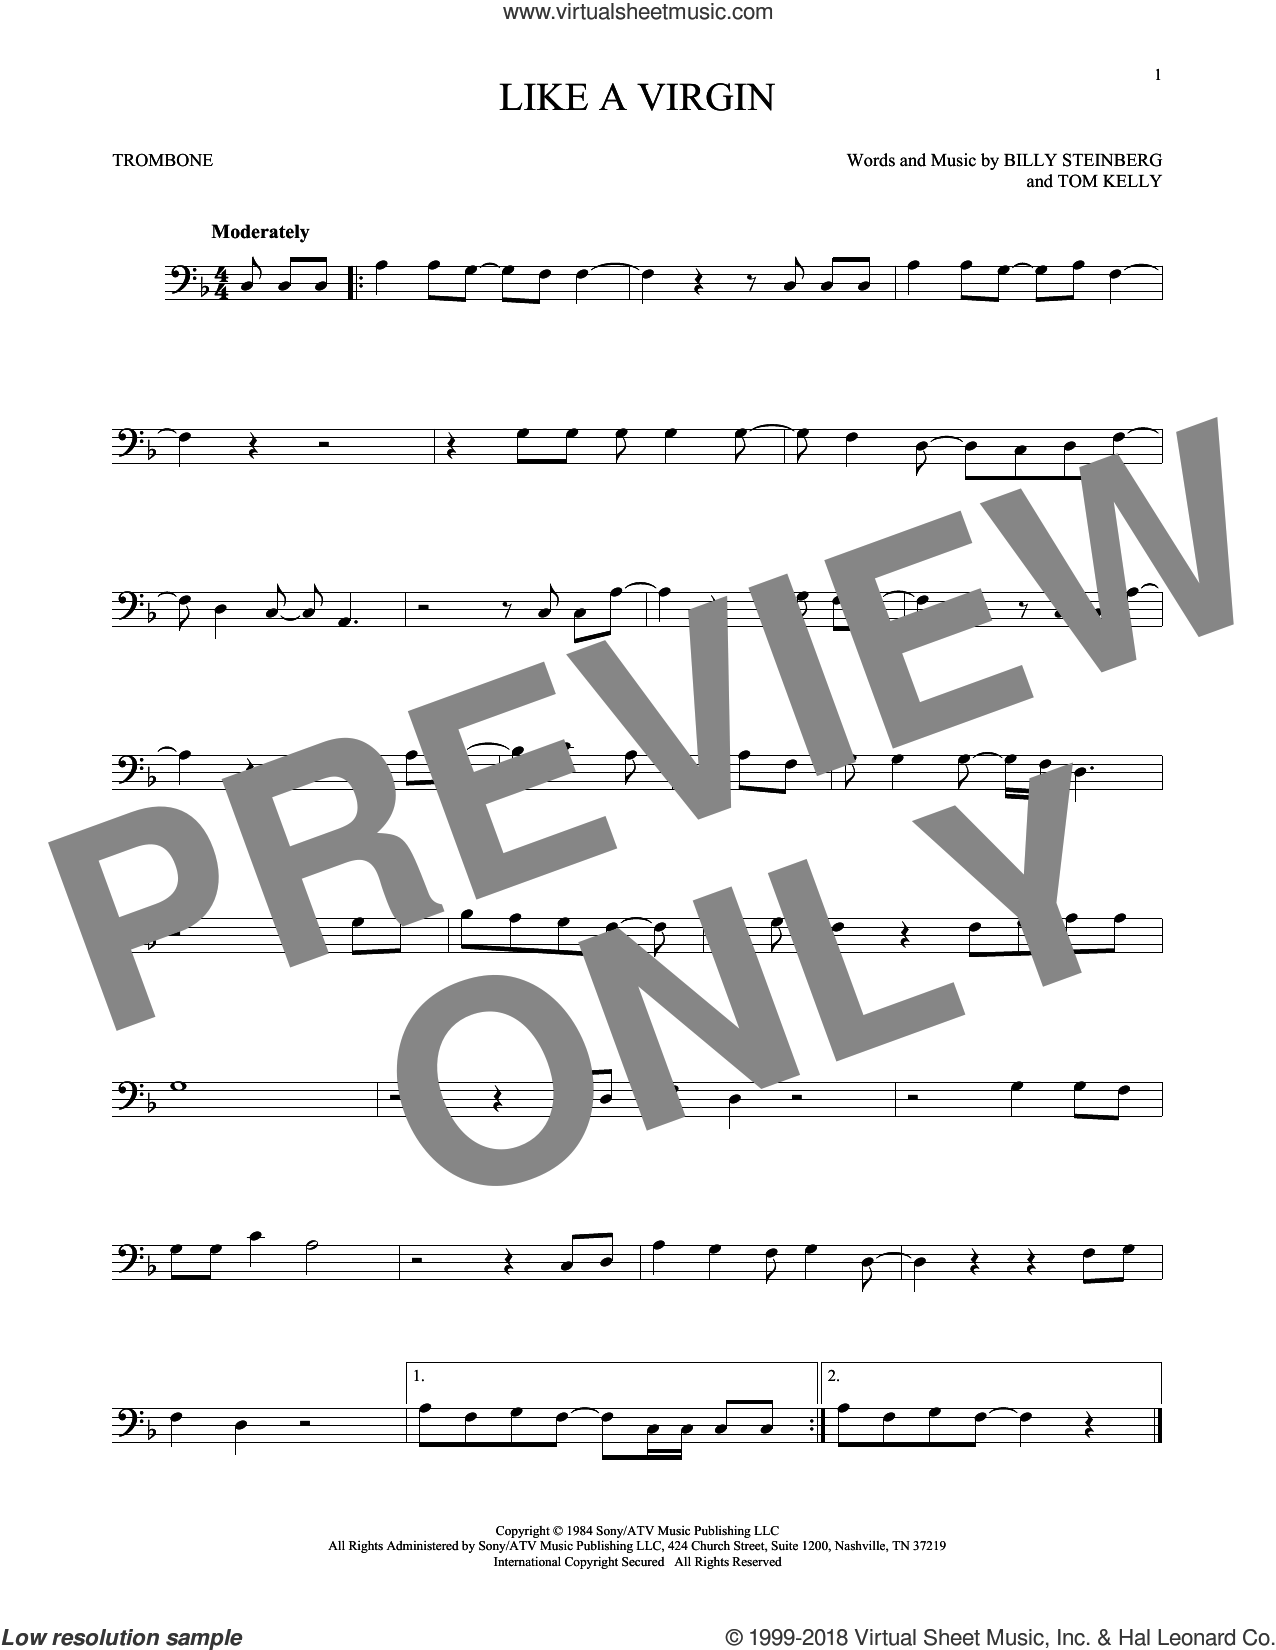 Like A Virgin sheet music for trombone solo by Madonna, Billy Steinberg and Tom Kelly, intermediate skill level